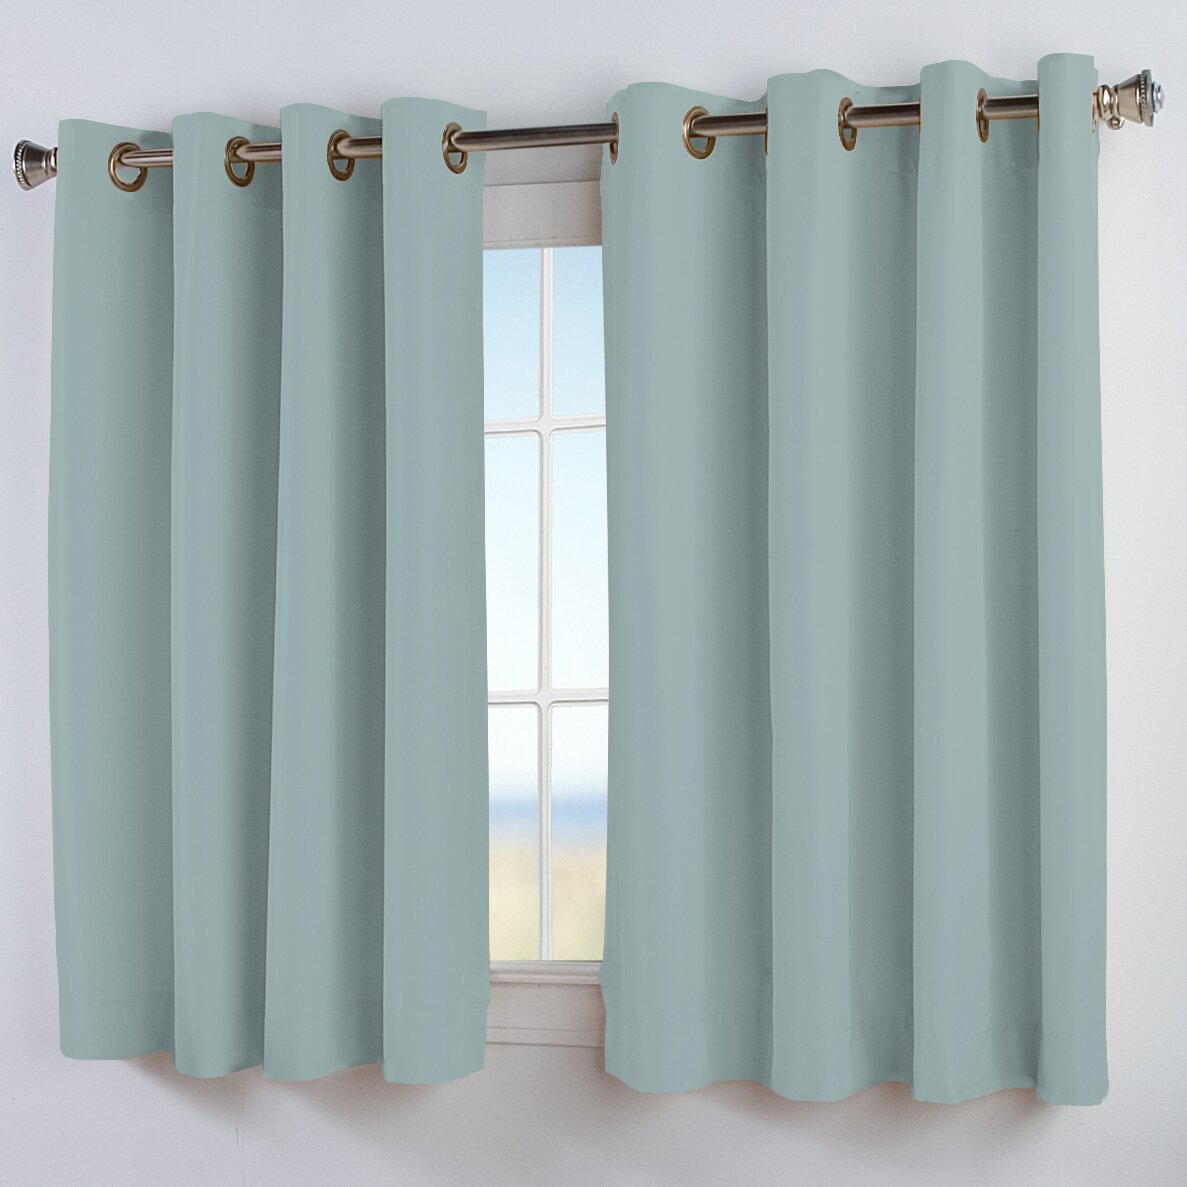 Ricardo Trading Elegance Insulated Short Single Curtain